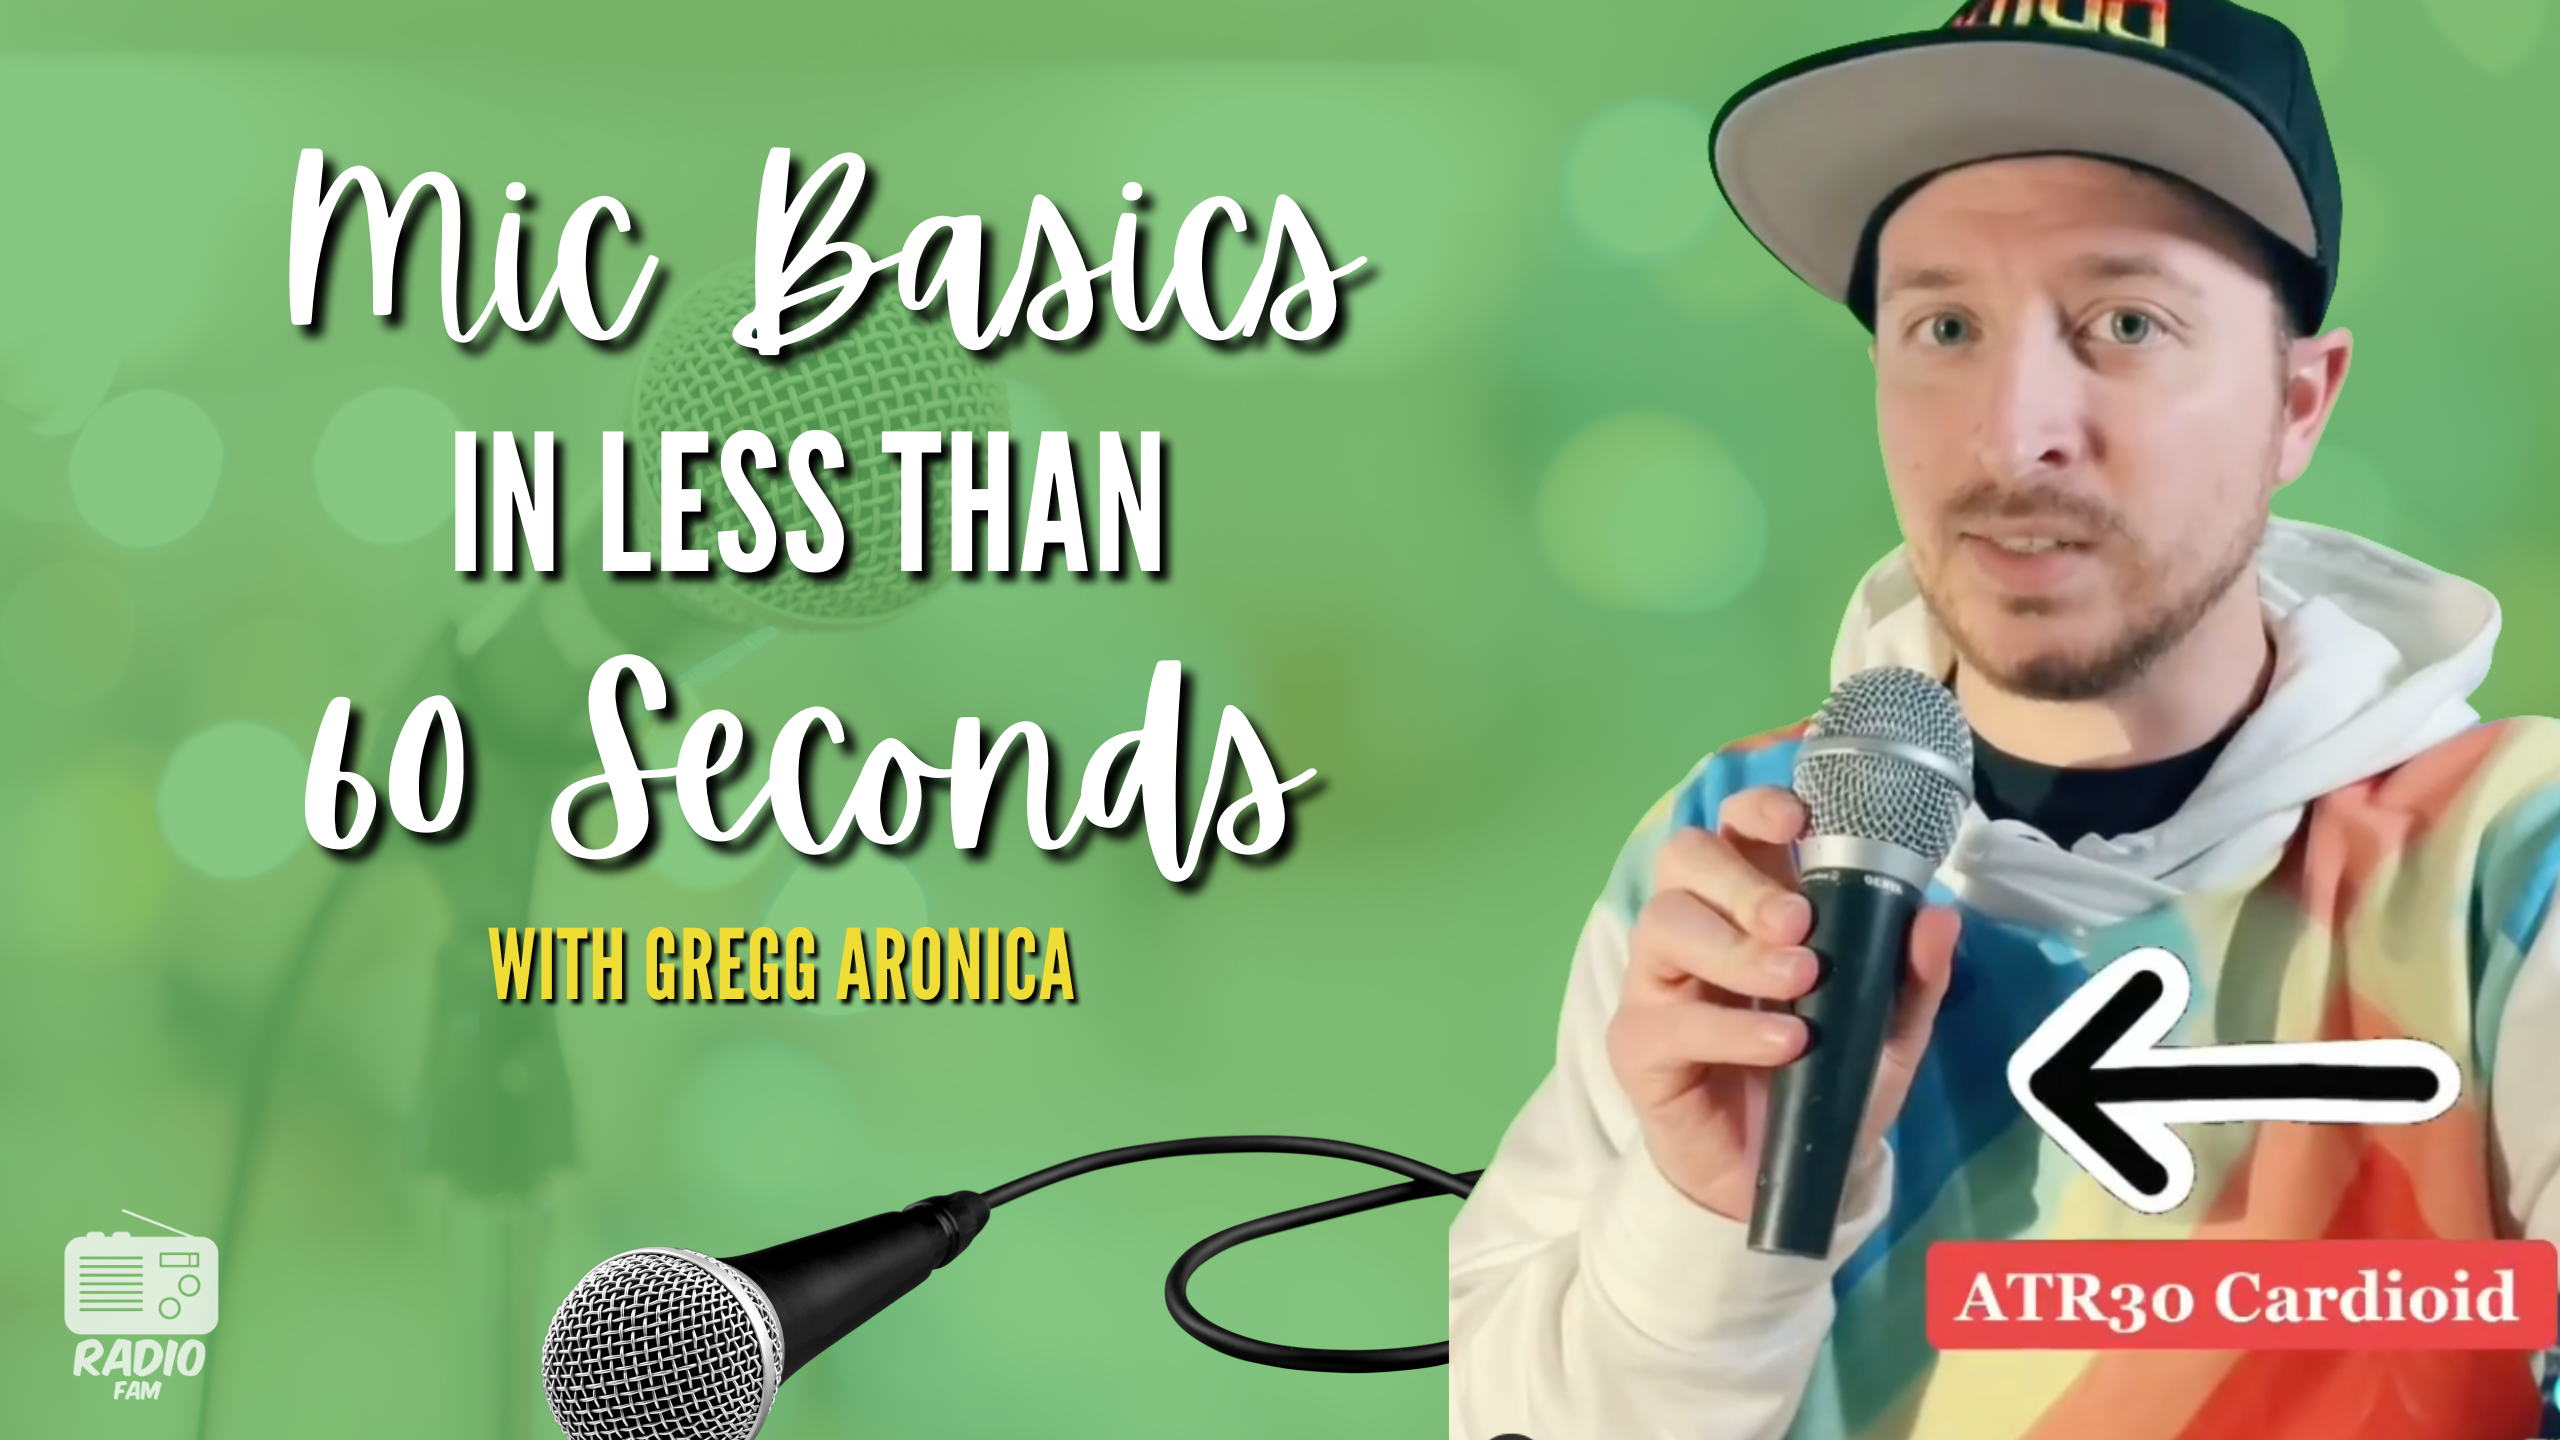 Microphone Basics in Less Than 60 Seconds